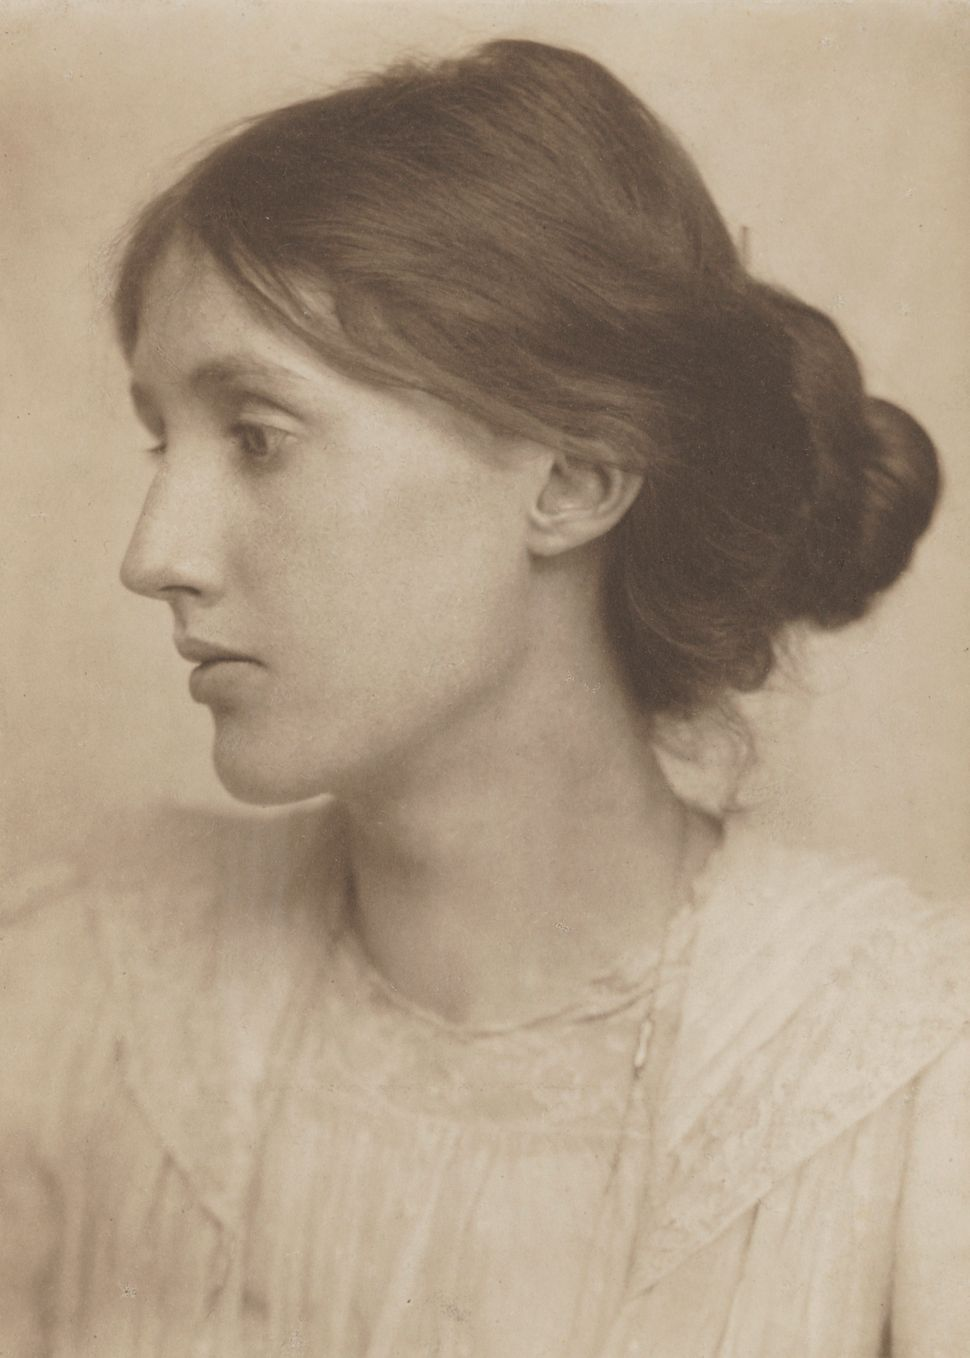 Virginia Stephen by George Charles Beresford, July 1902 ©National Portrait Gallery, London